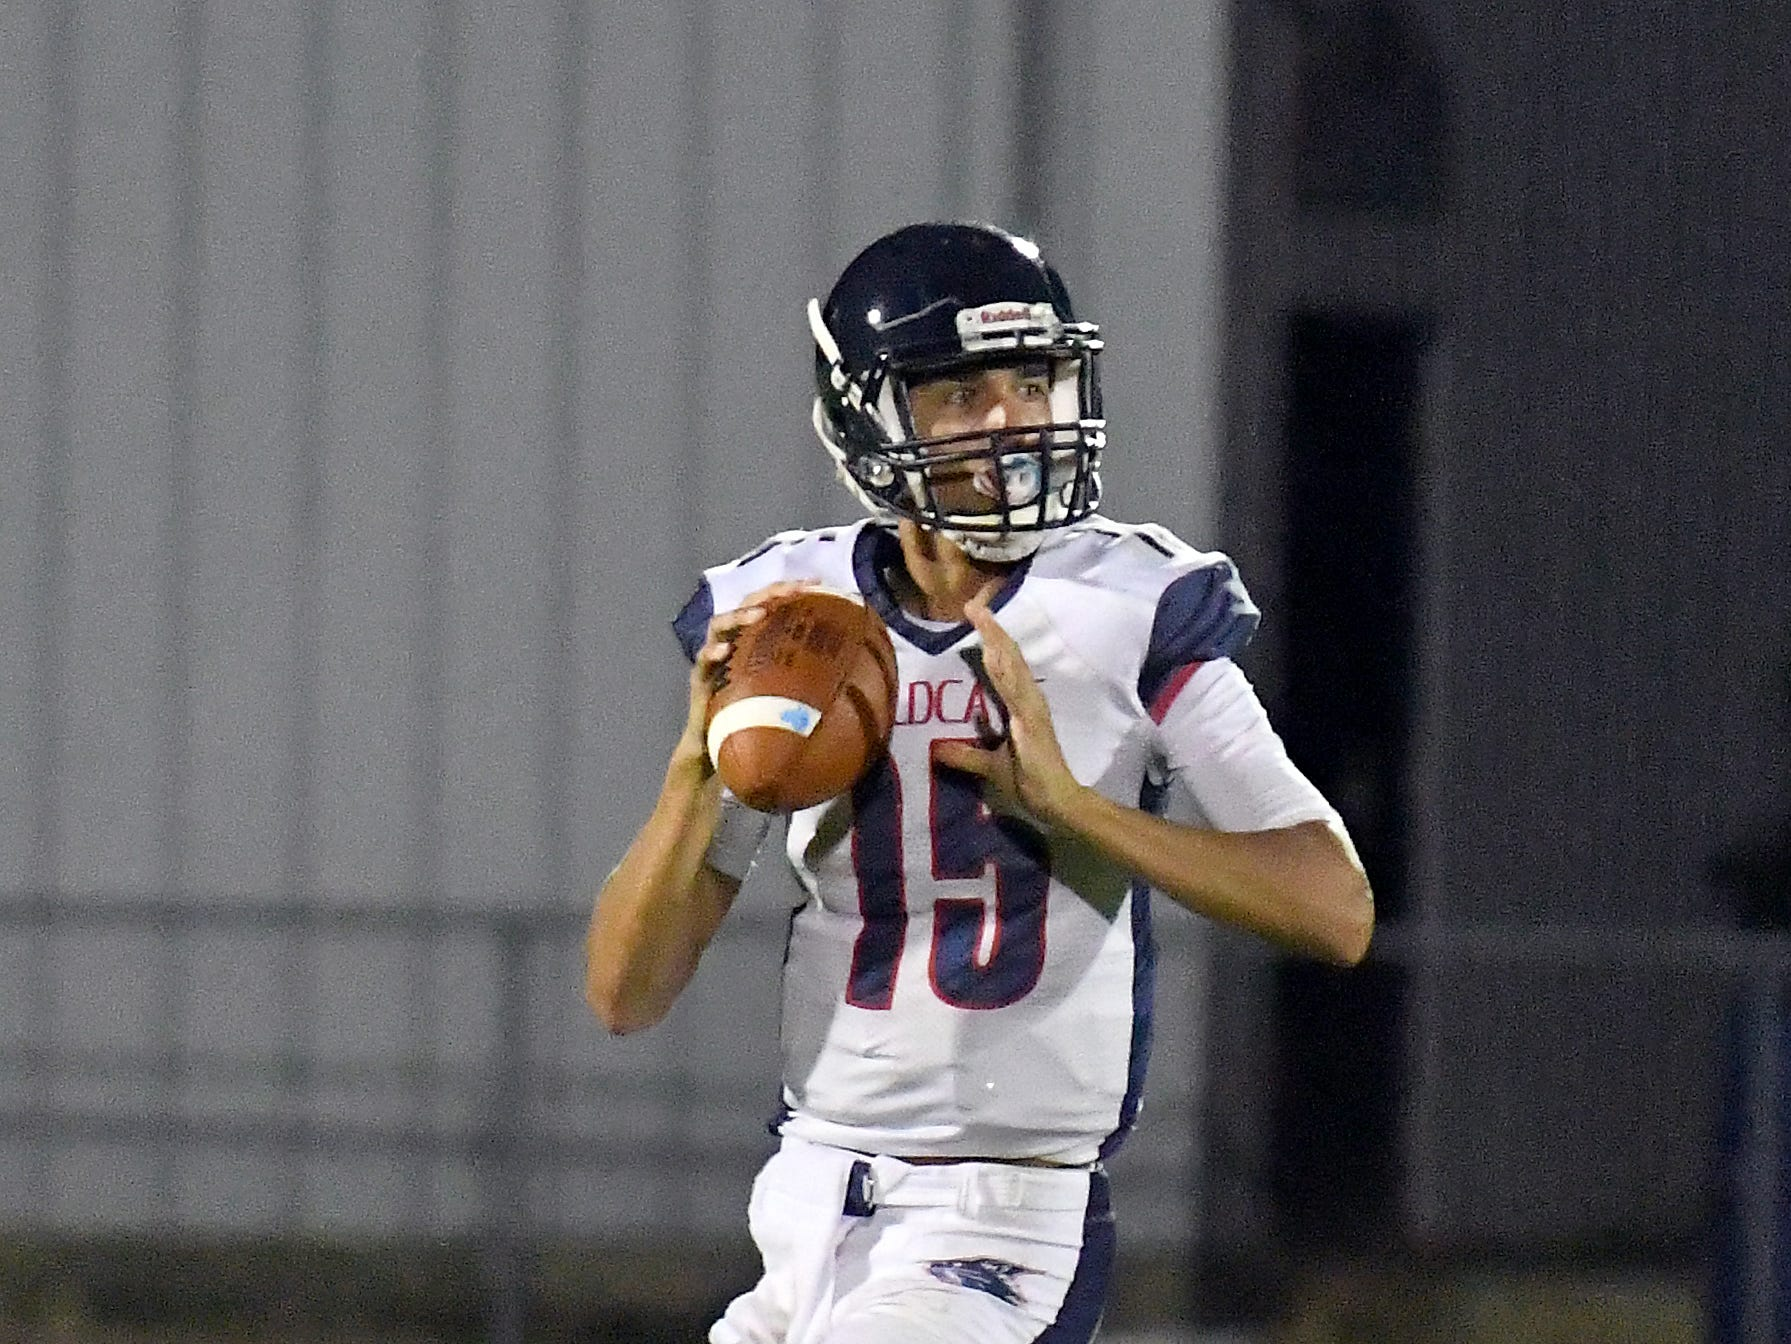 Estero High School quarterback Tanner Elliot (15) drops back for a pass in their game with  Mariner High School in Cape Coral Monday, Aug. 27, 2018.